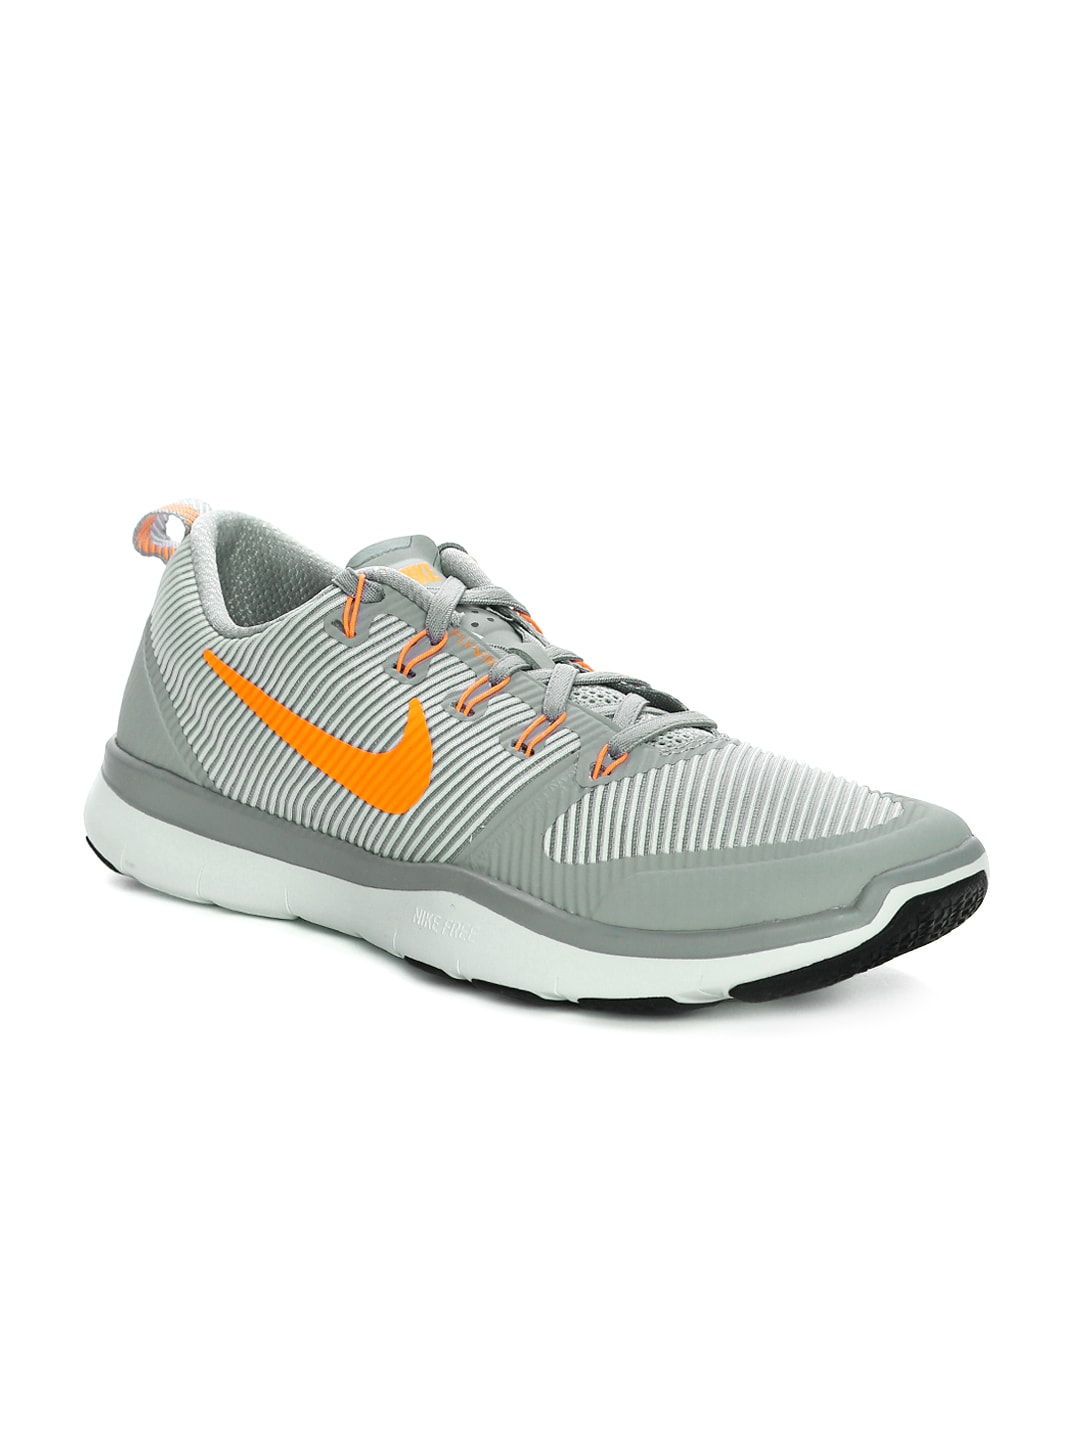 promo code 30f98 983fd Sports Shoes - Buy Sport Shoes For Men   Women Online   Myntra